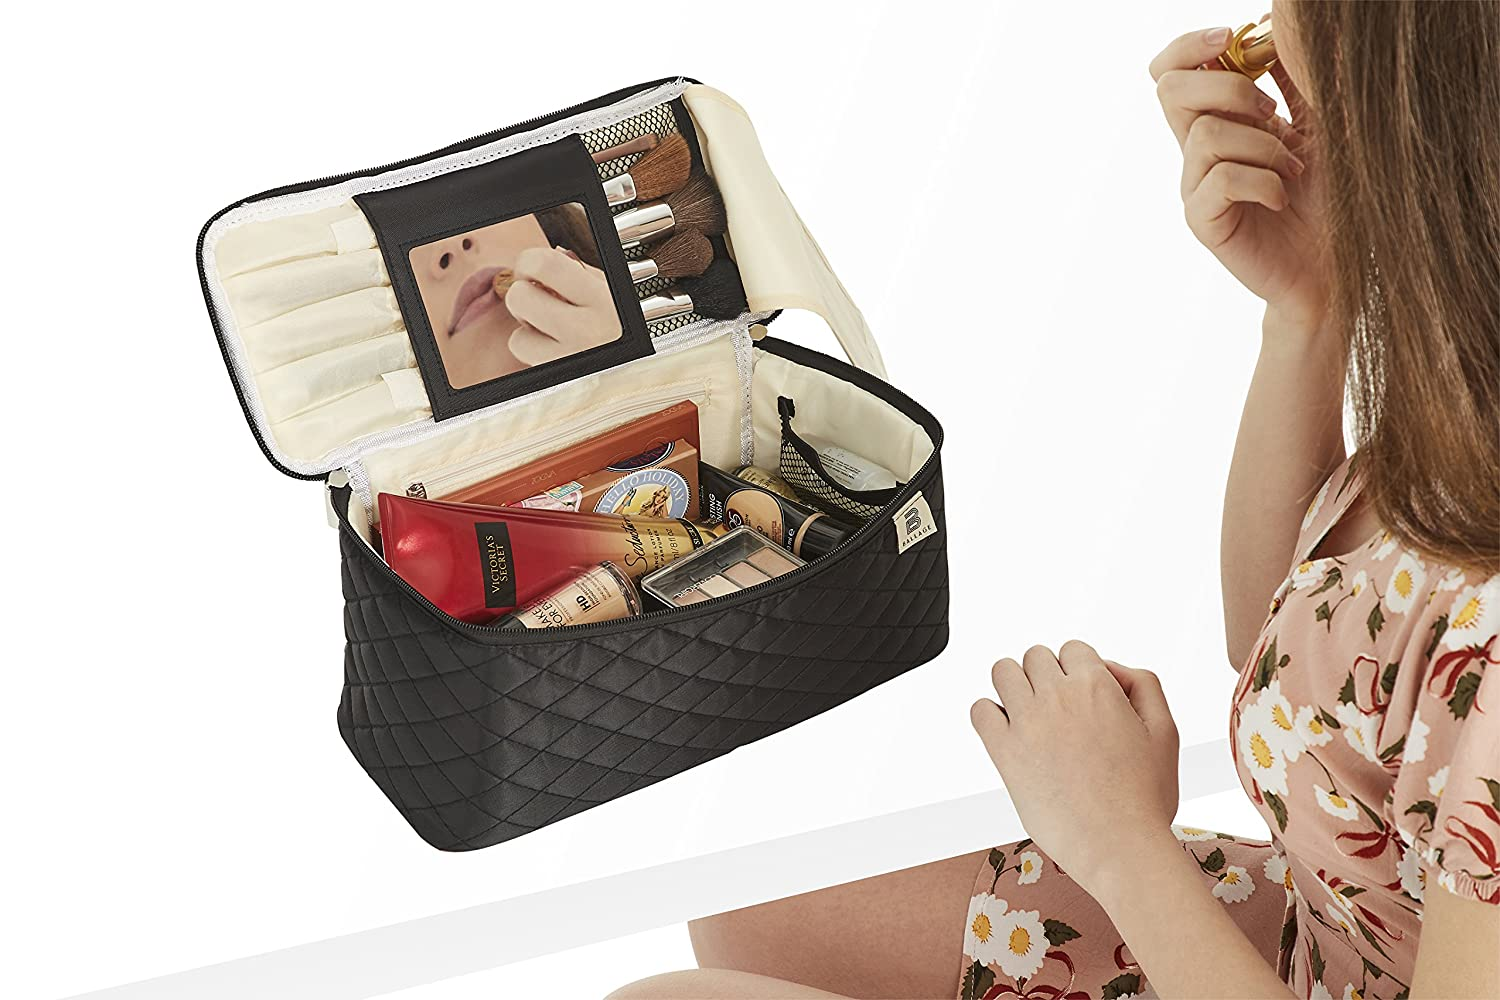 Ballage Large Quilted Makeup Organizer Bag with Mirror To Organize Your Beauty Tools. Multi Functional Makeup Bag Cosmetic Organizer and Toiletry Holder. Includes Brush Holder